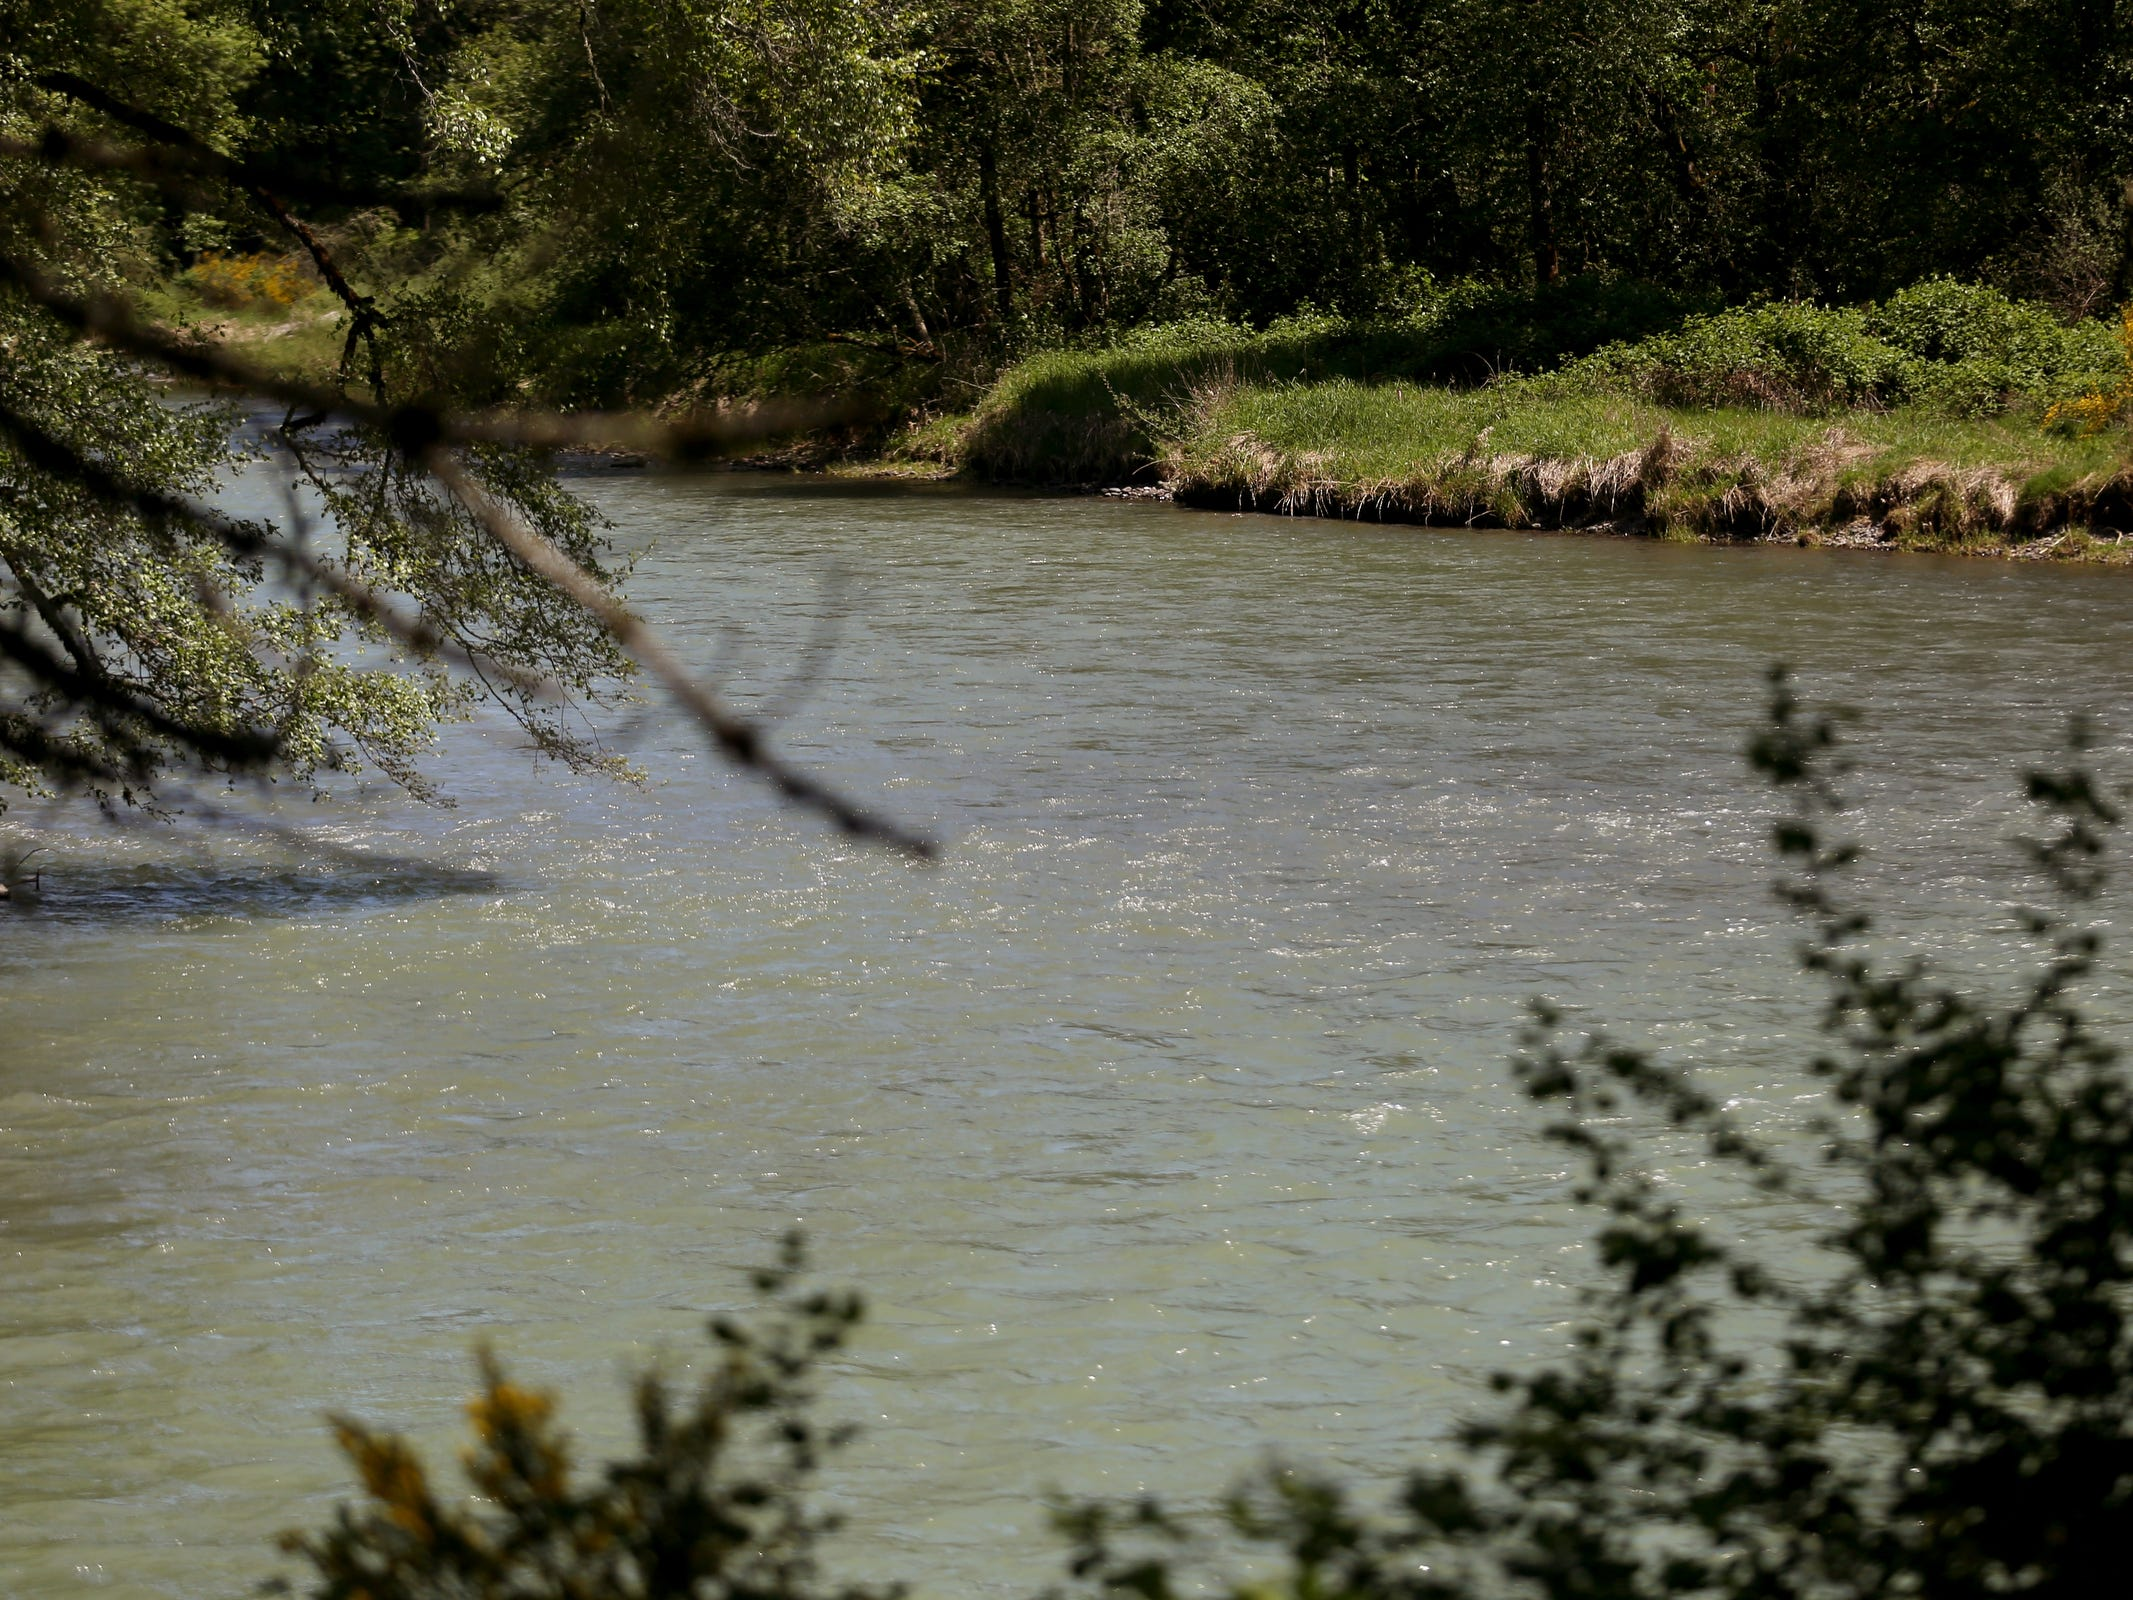 The North Santiam River at the Geren Island Water Treatment Facility near Stayton on May 10, 2019. Salem officials are planning to spend more than $75 million to build defenses against toxic algae, in an effort to avoid a rerun of last year's drinking water crisis.